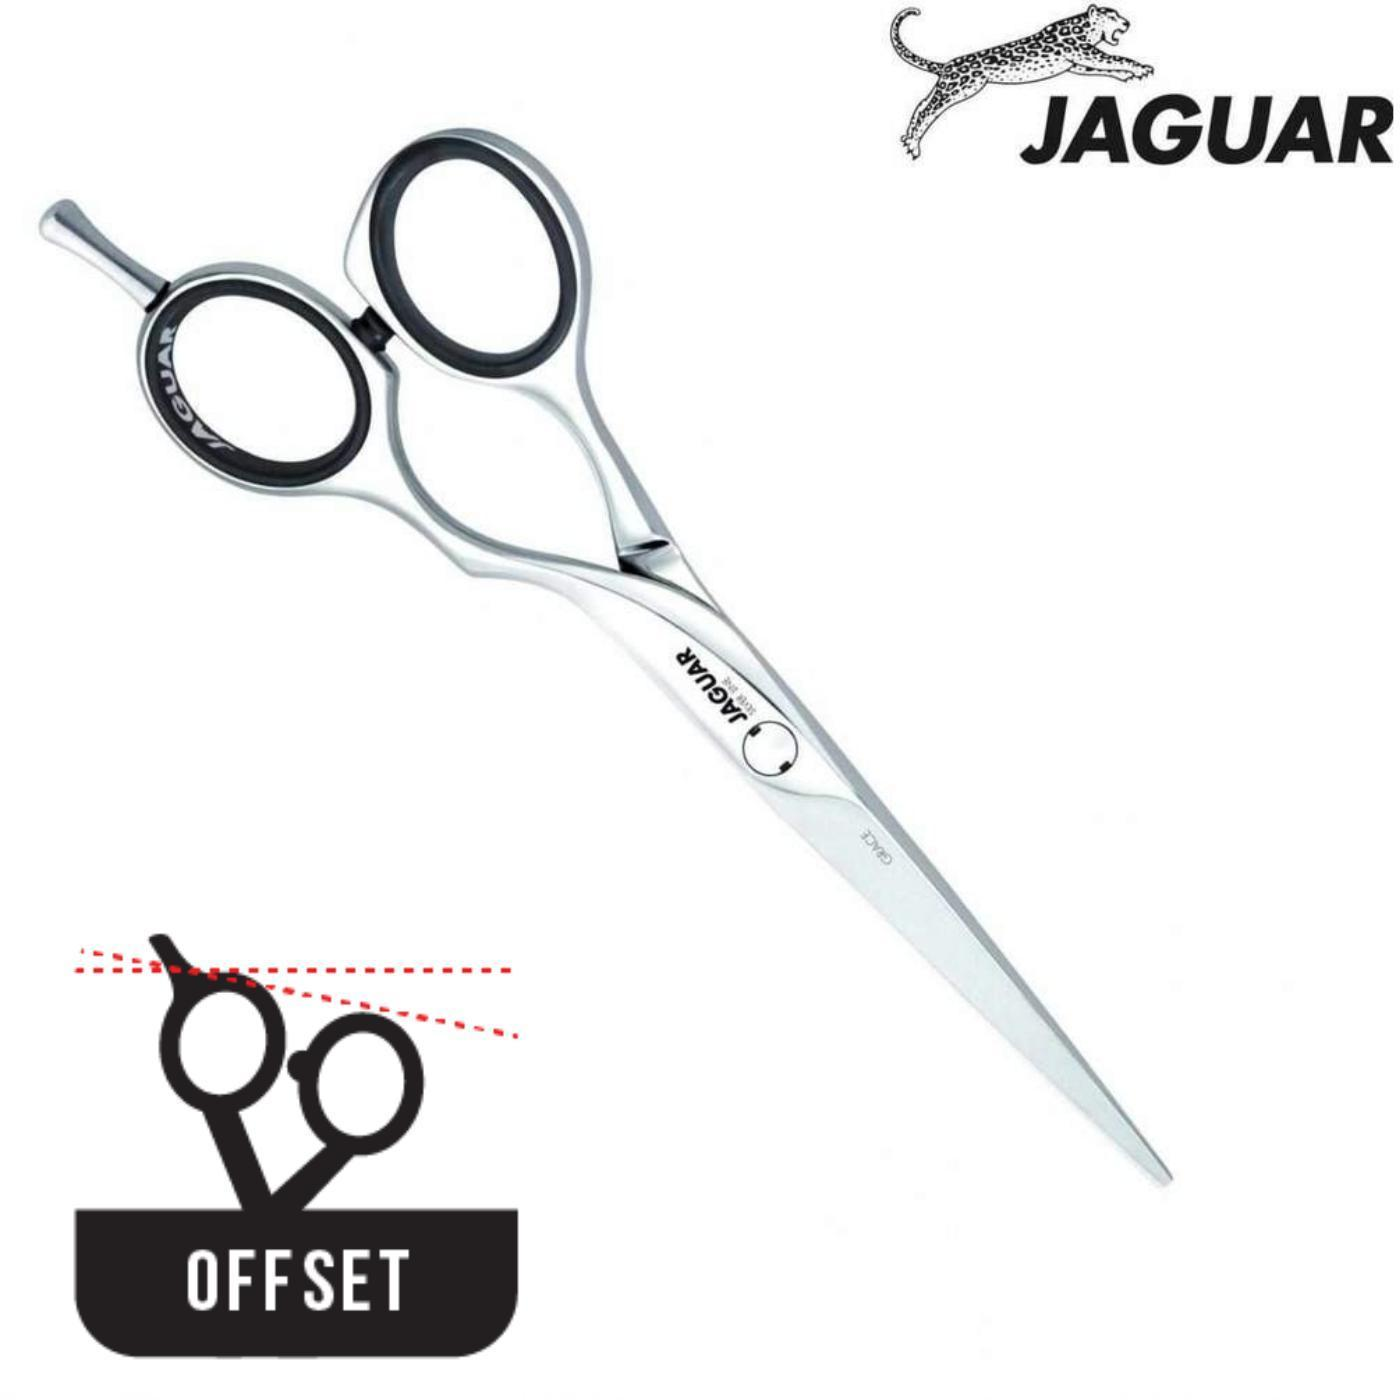 Jaguar Silver Line Grace Hair Cutting Scissors - Japan Scissors